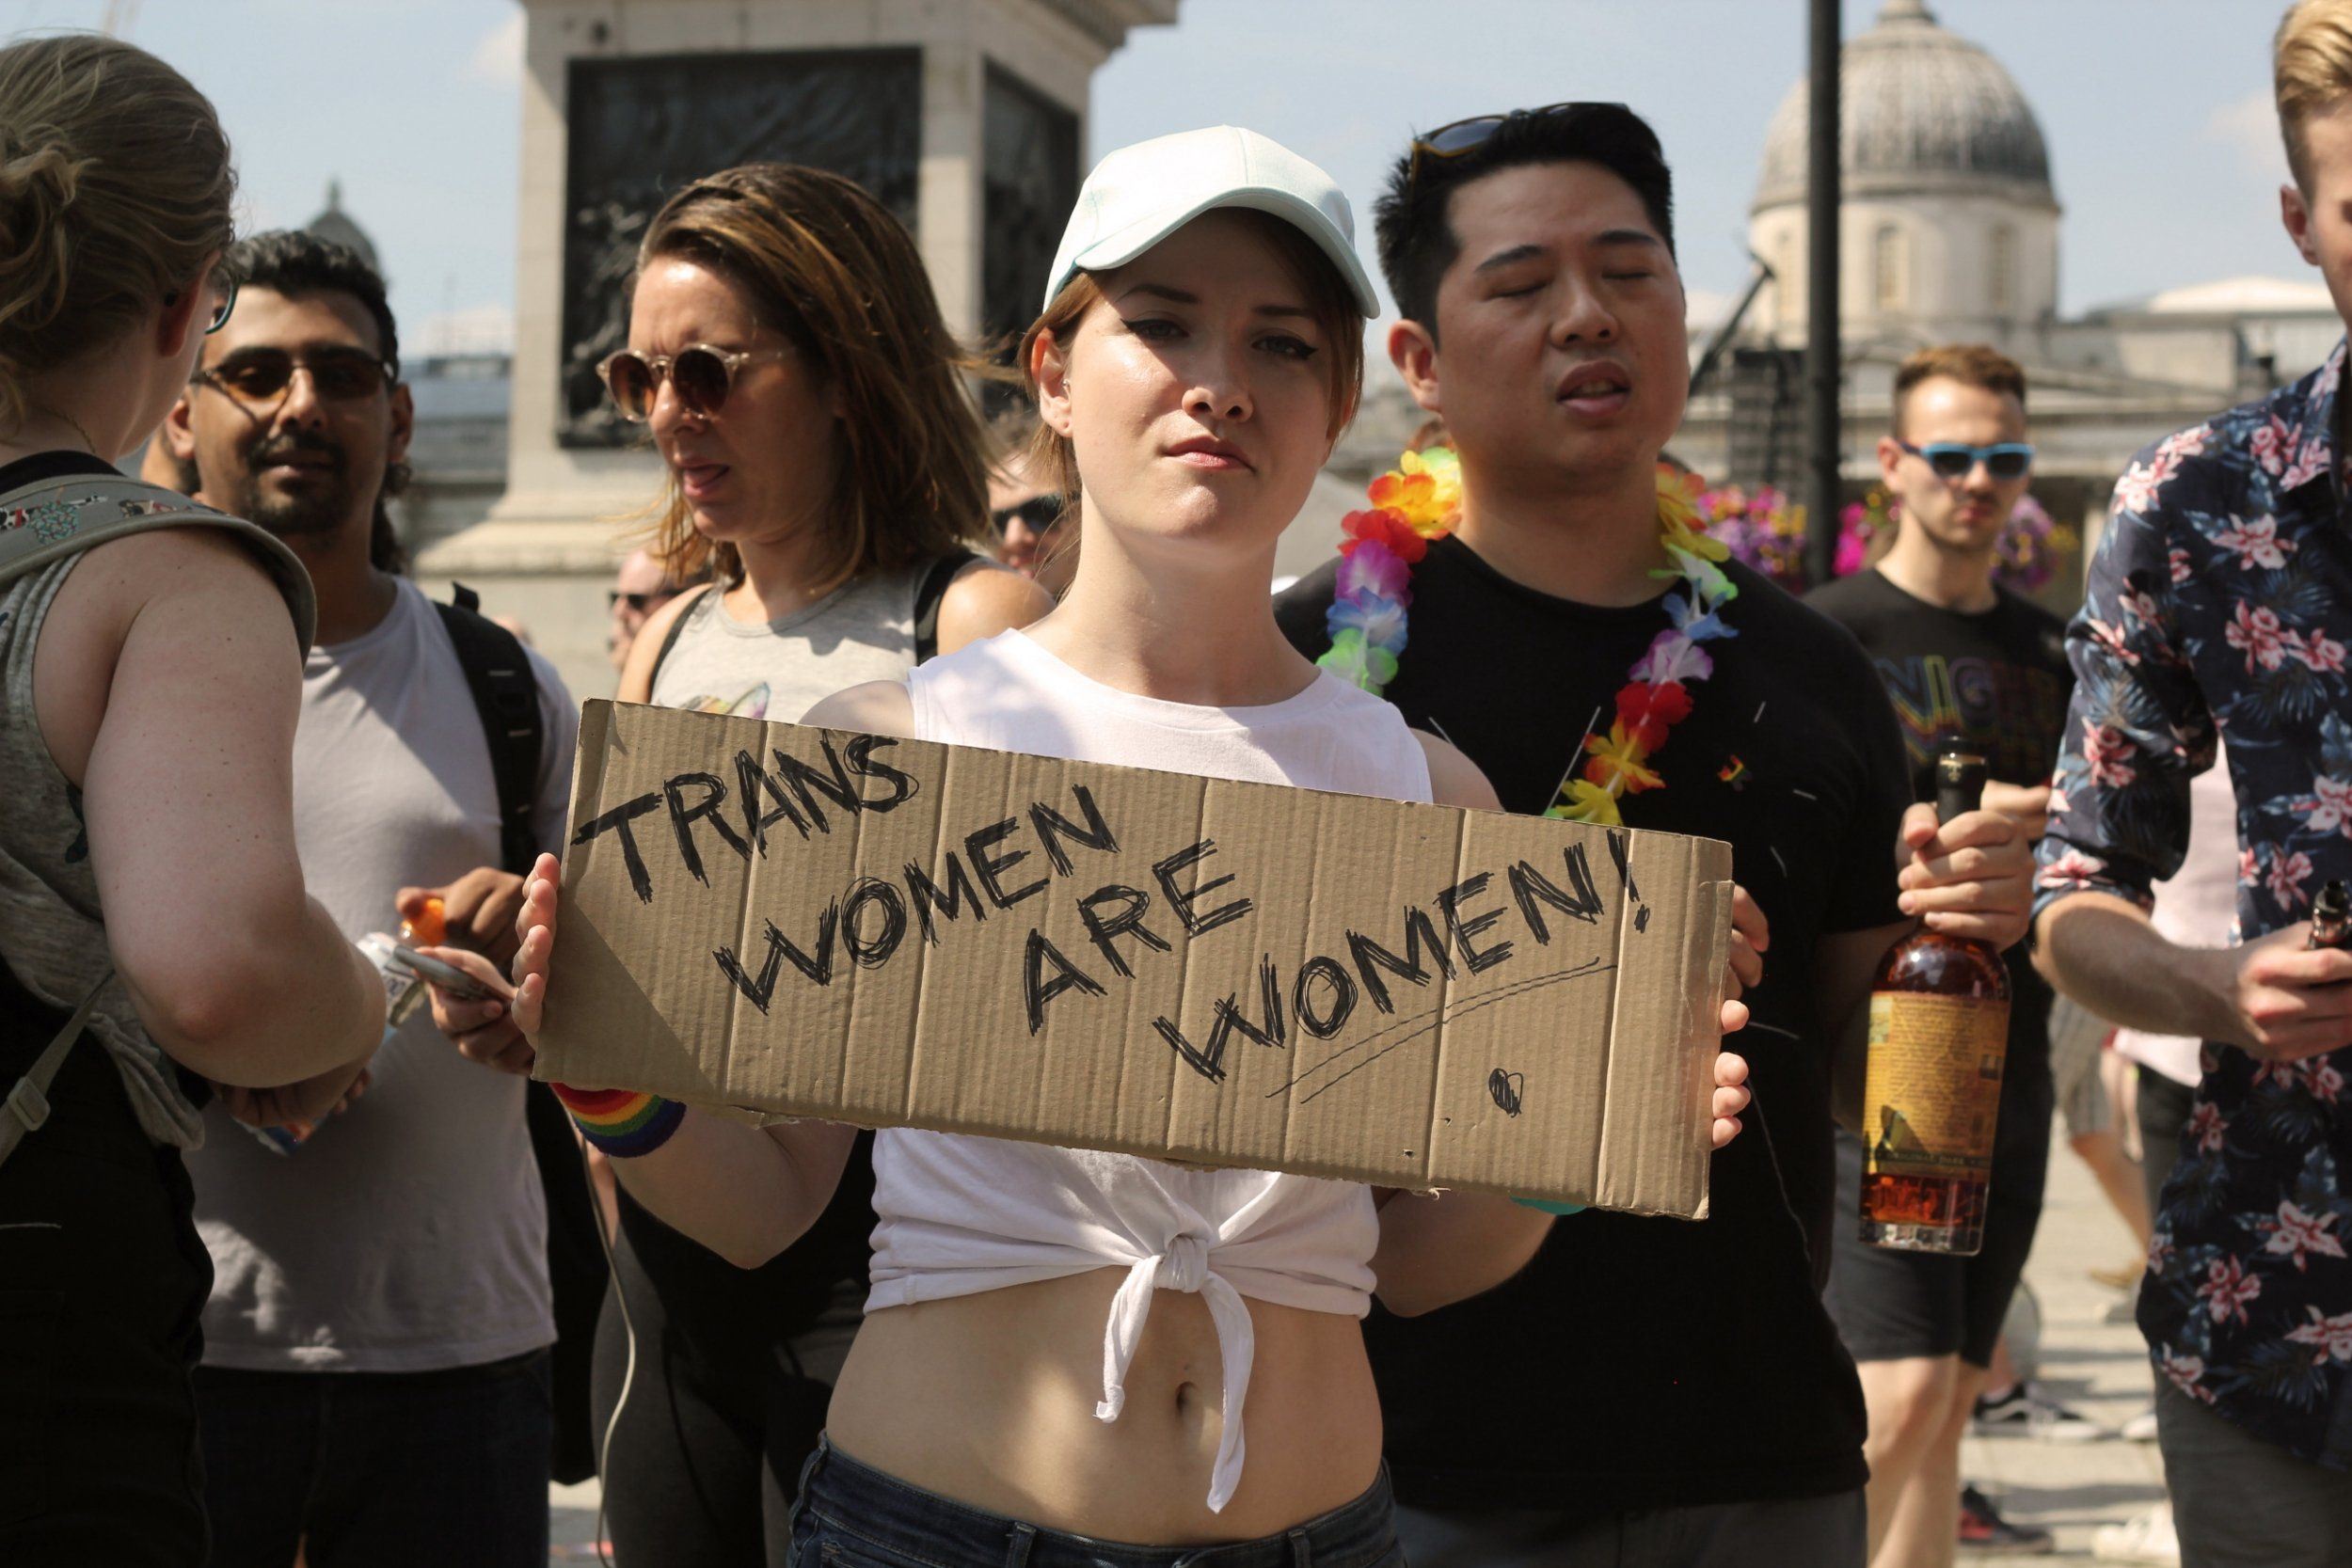 Prominent Lbgt People Come Together To Condemn Anti Trans Protesters At London Pride Trans Woman London Pride Pride